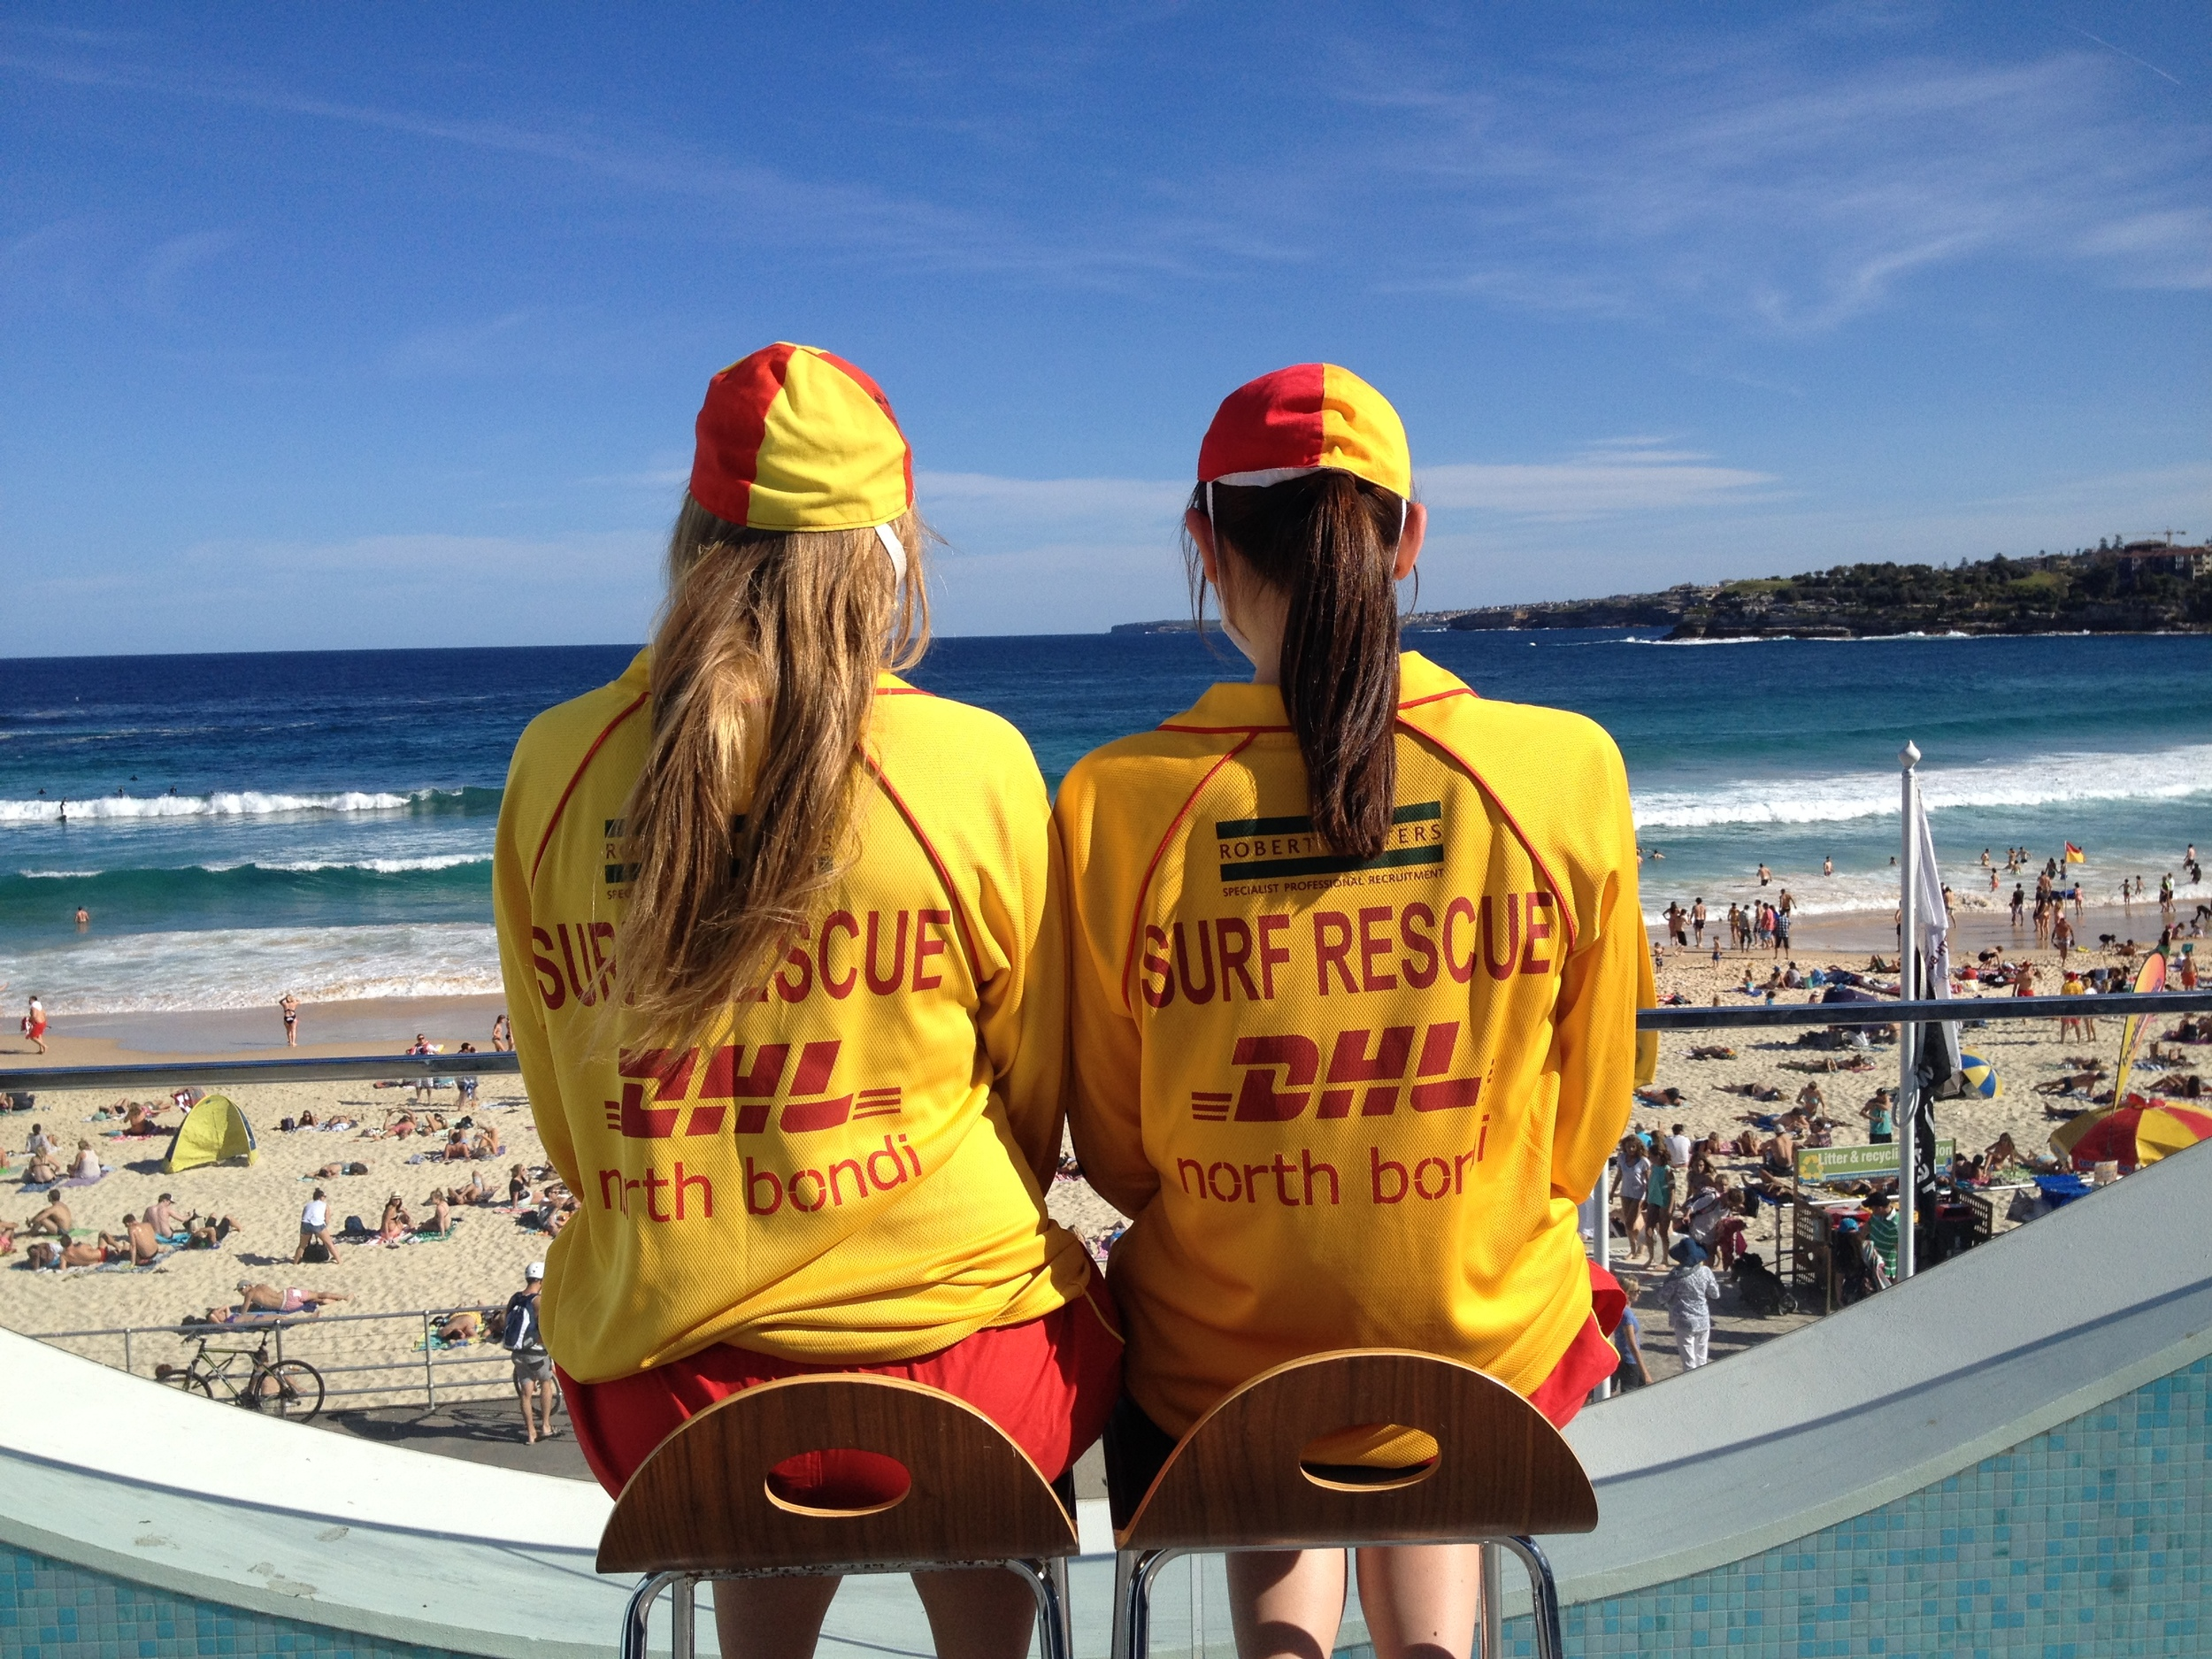 On a busy Summer's day, more than 50,000 people can flock to@northbondislsc Beach. To get the best view, our volunteer lifesavers are perched high, ready to alert their Patrol Captain if an incident arises in the distance.#northbondi #bondibeach Pic: Drew Lambert